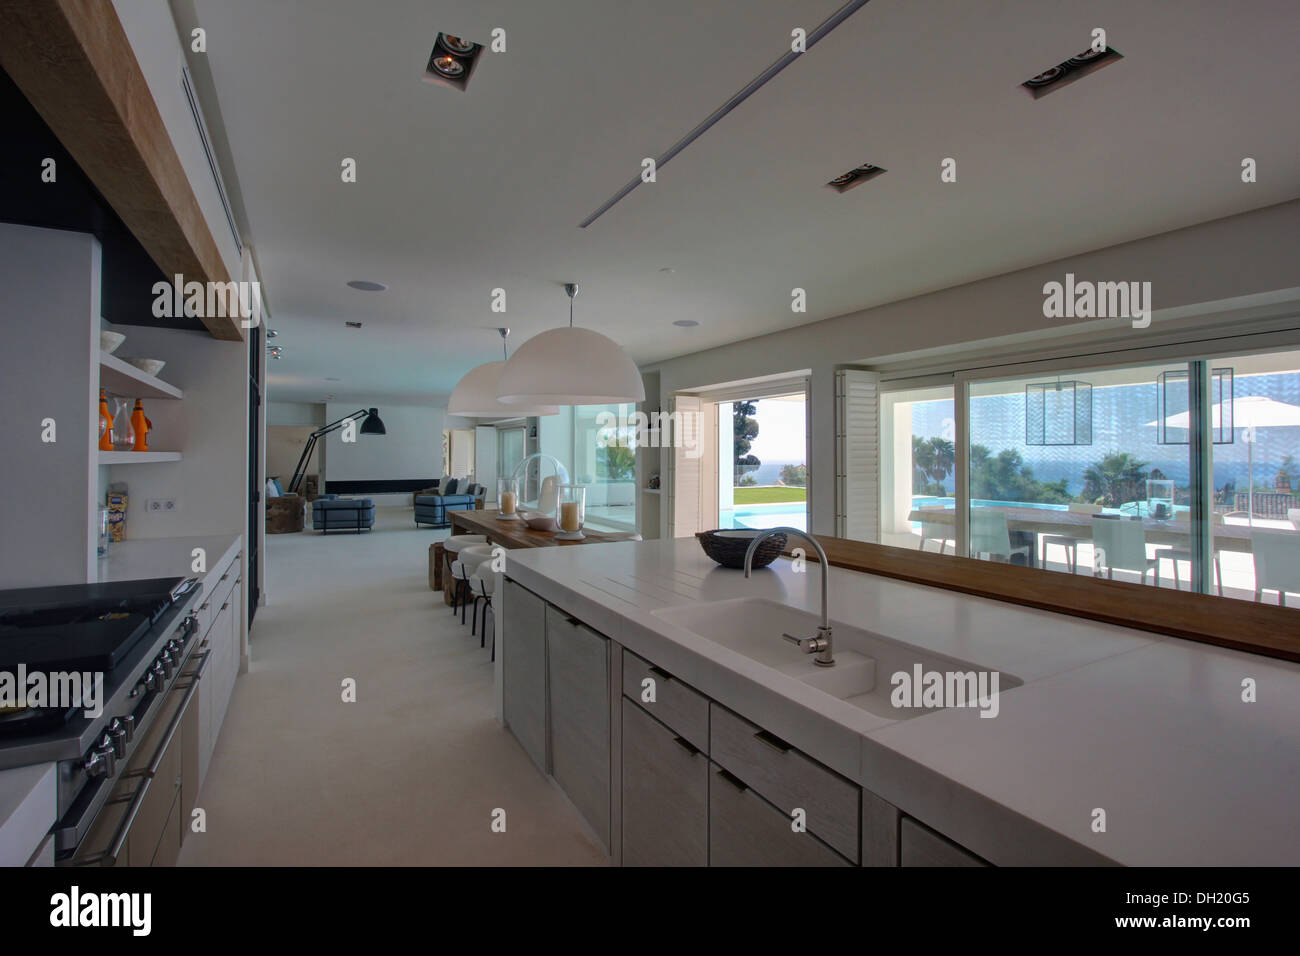 Sink And Chrome Tap In Fitted Unit Below Window In Large Galley Stock Photo Royalty Free Image